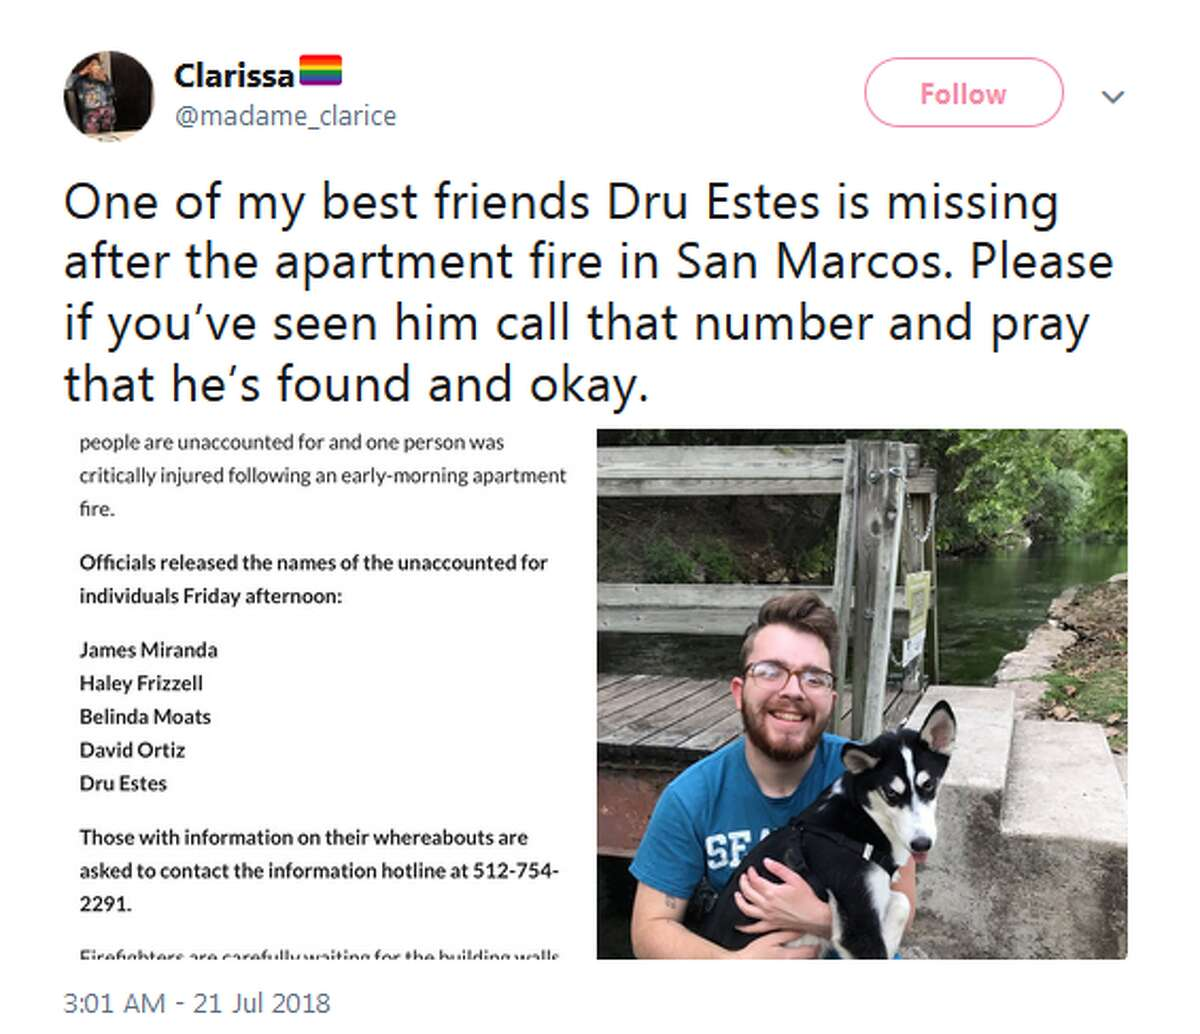 @madame_clarice: One of my best friends Dru Estes is missing after the apartment fire in San Marcos. Please if you've seen him call that number and pray that he's found and okay.